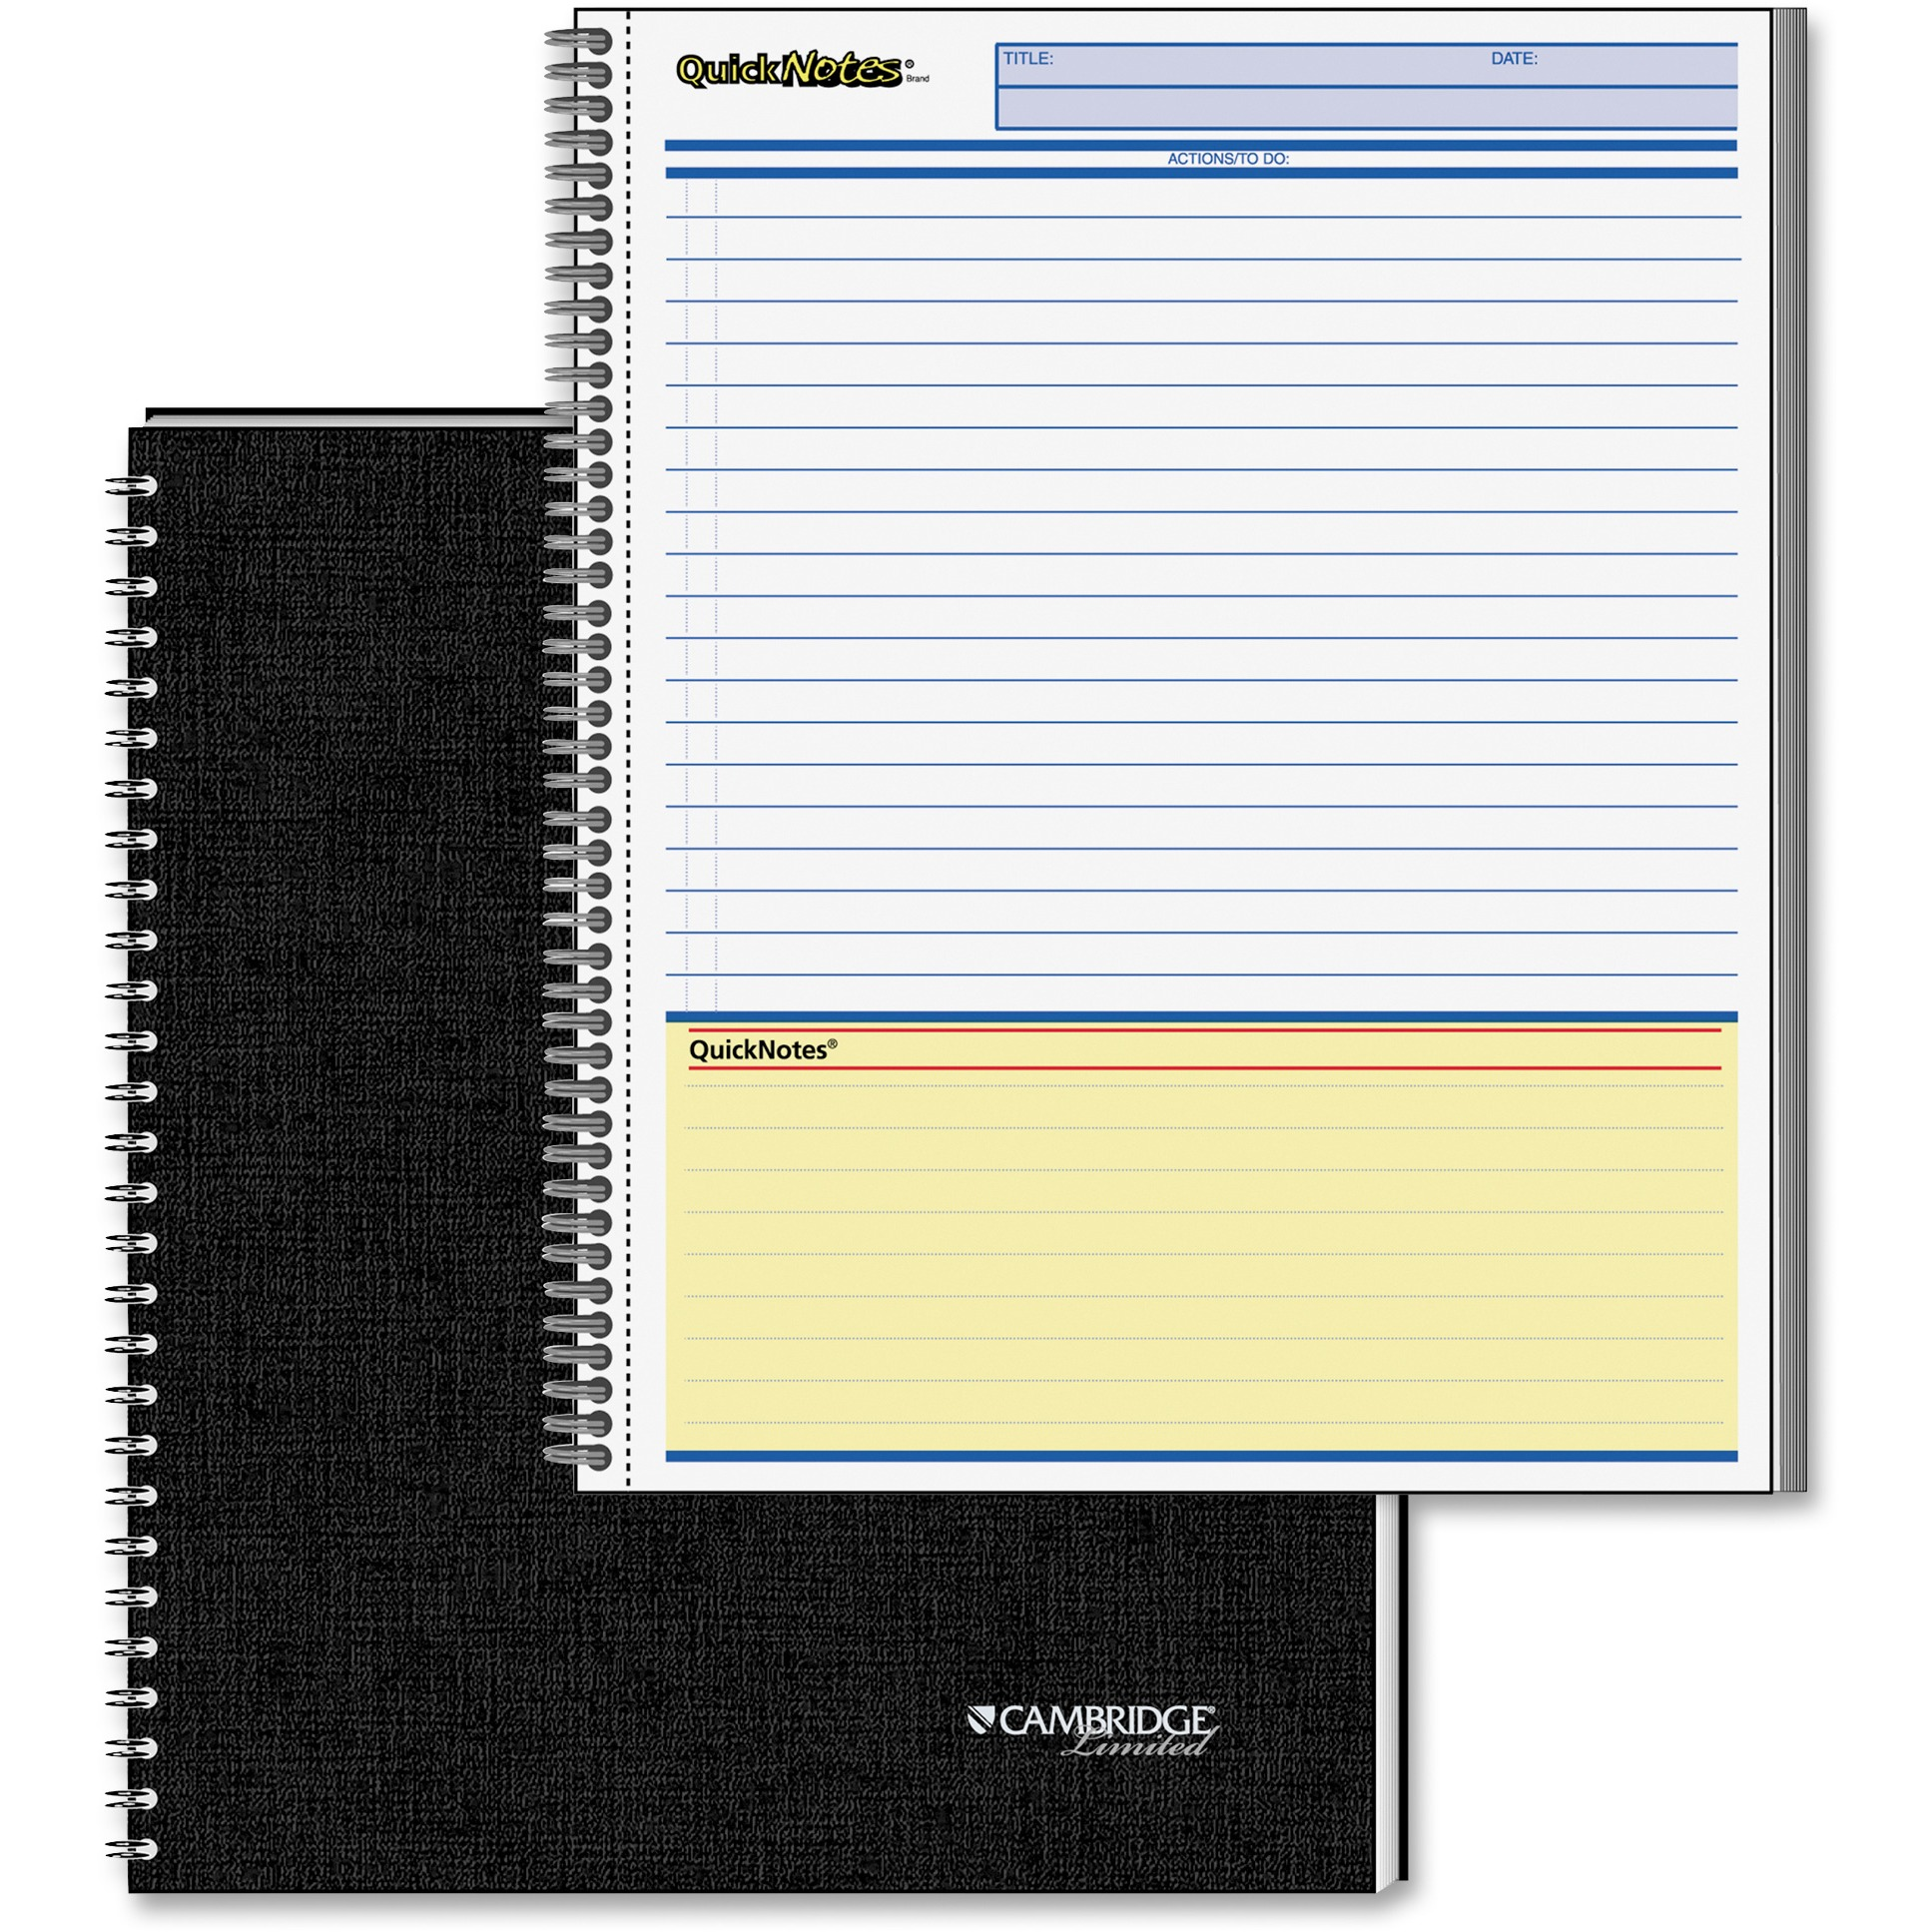 Mead, MEA06066, QuickNotes Professional Planner Notebook, 1 Each, Assorted